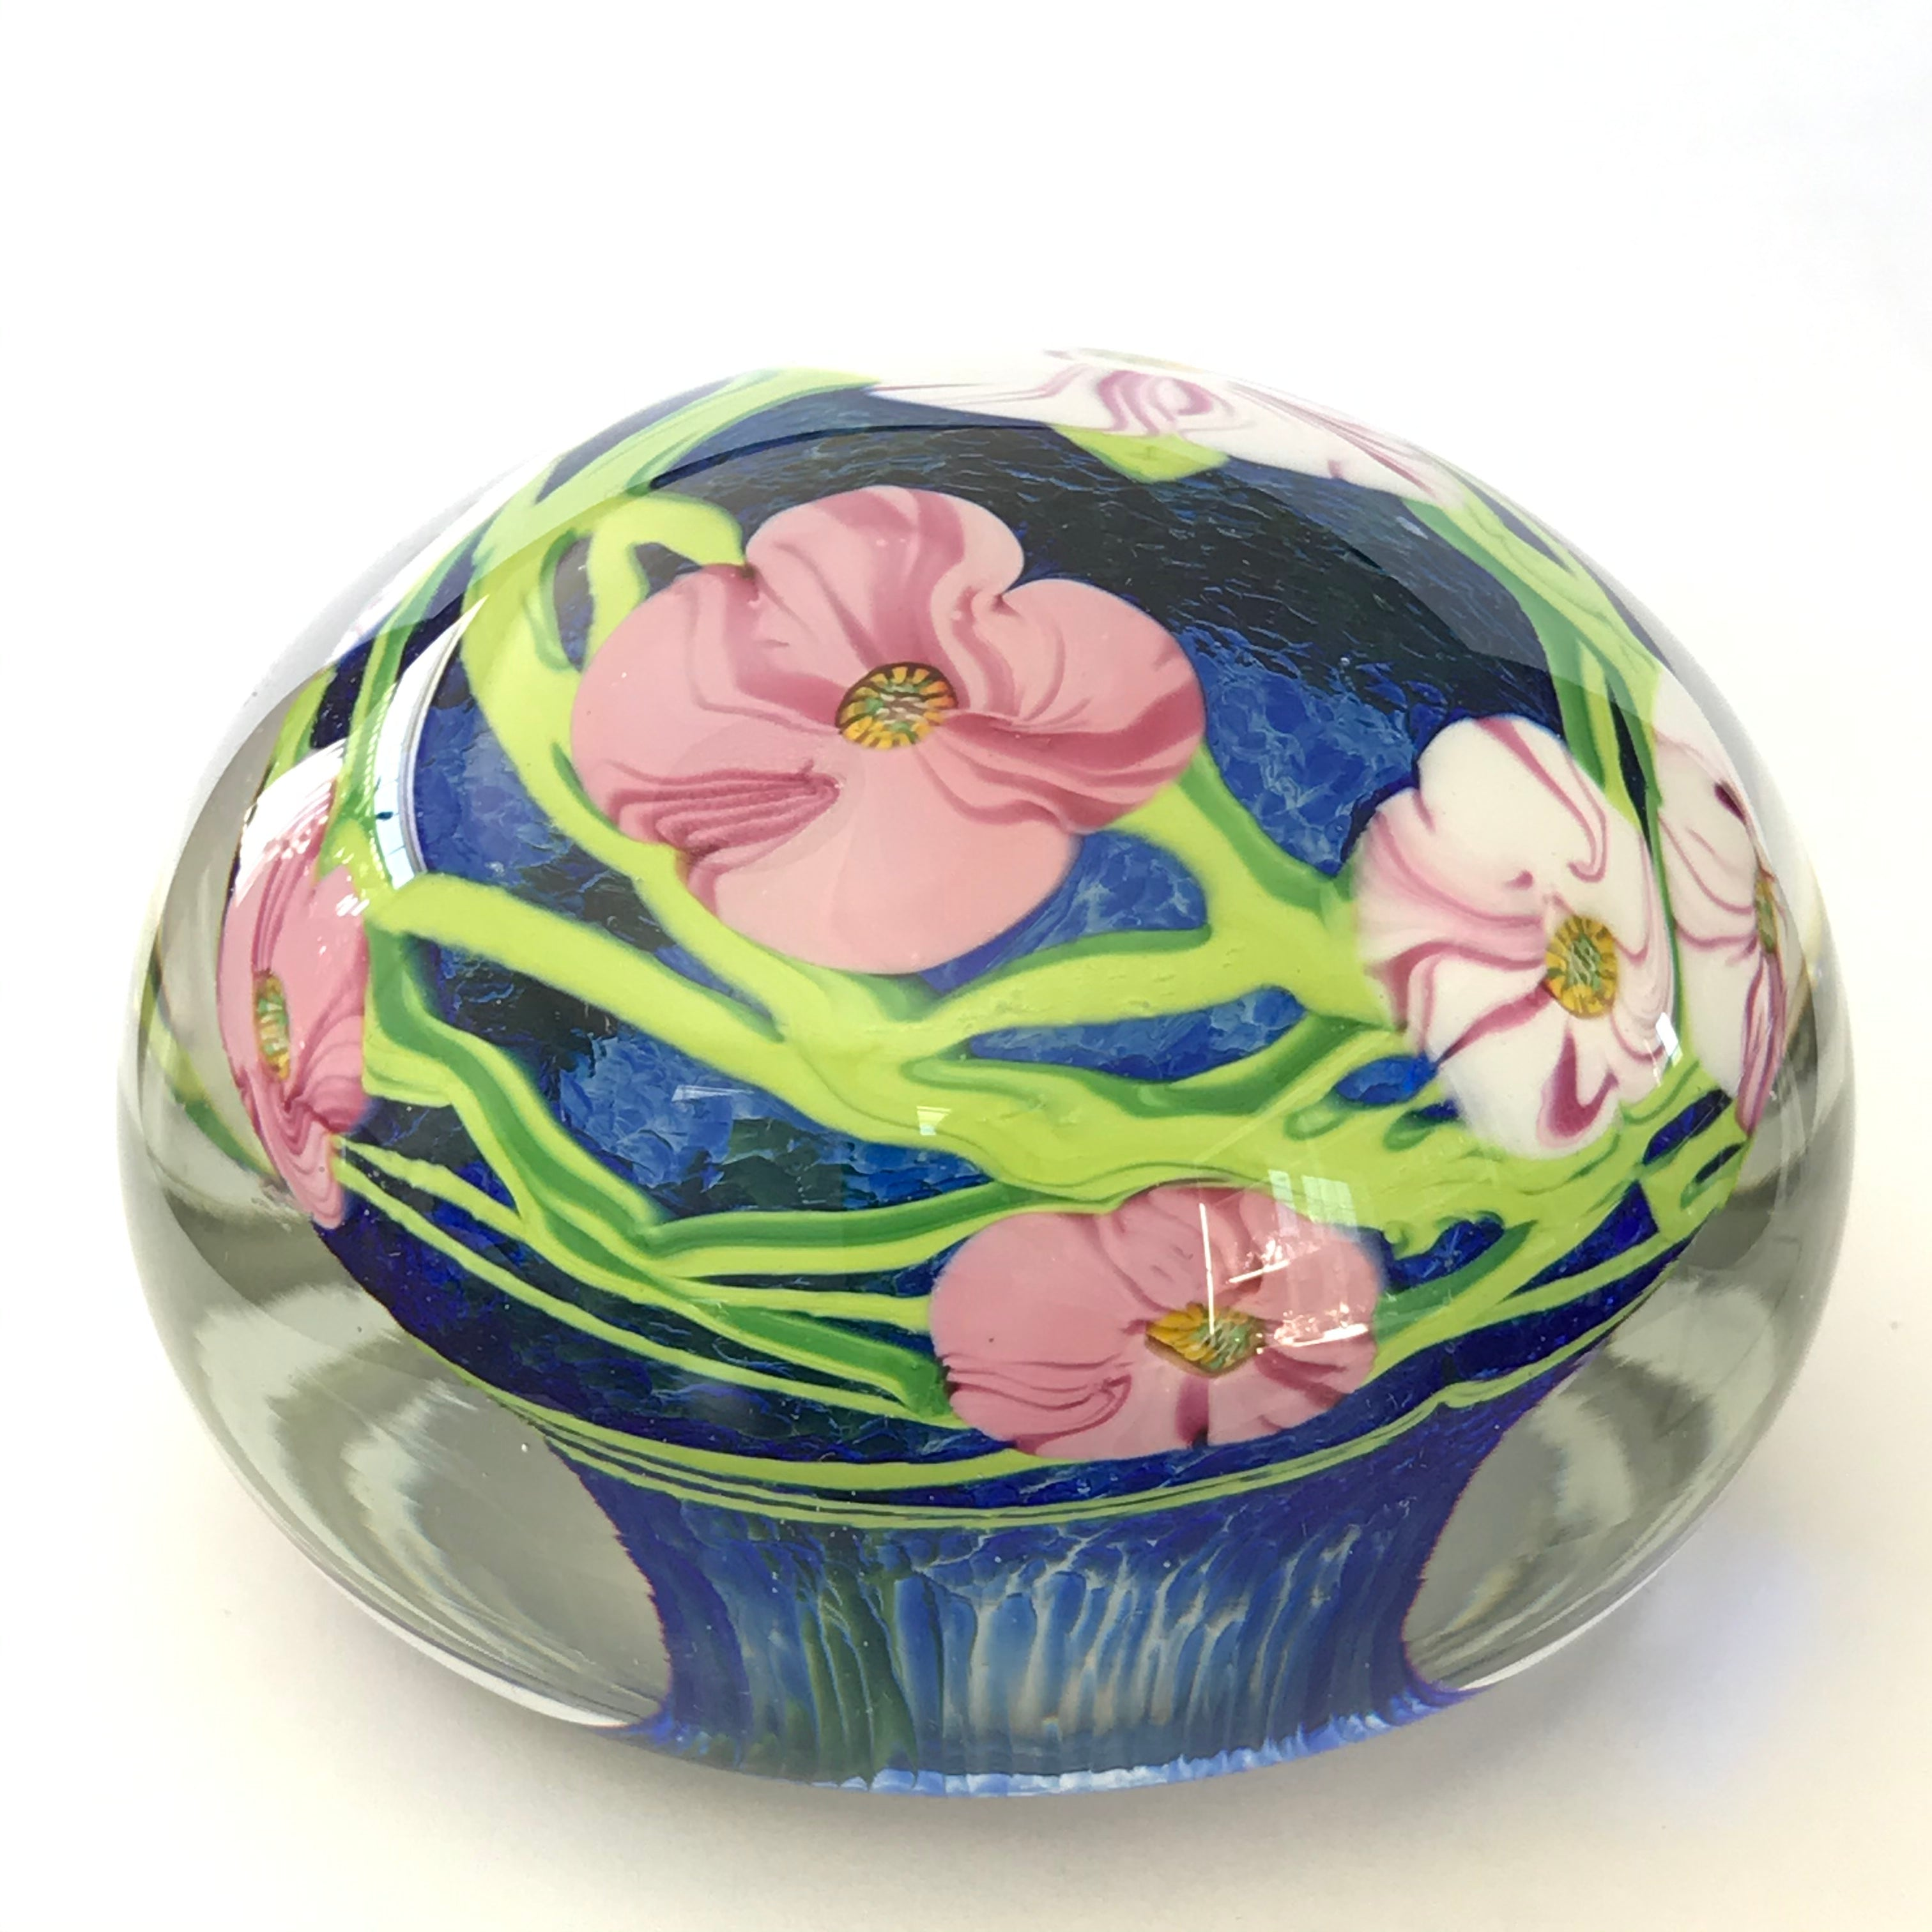 Unmarked magnum paperweight with flowers with millefiori center